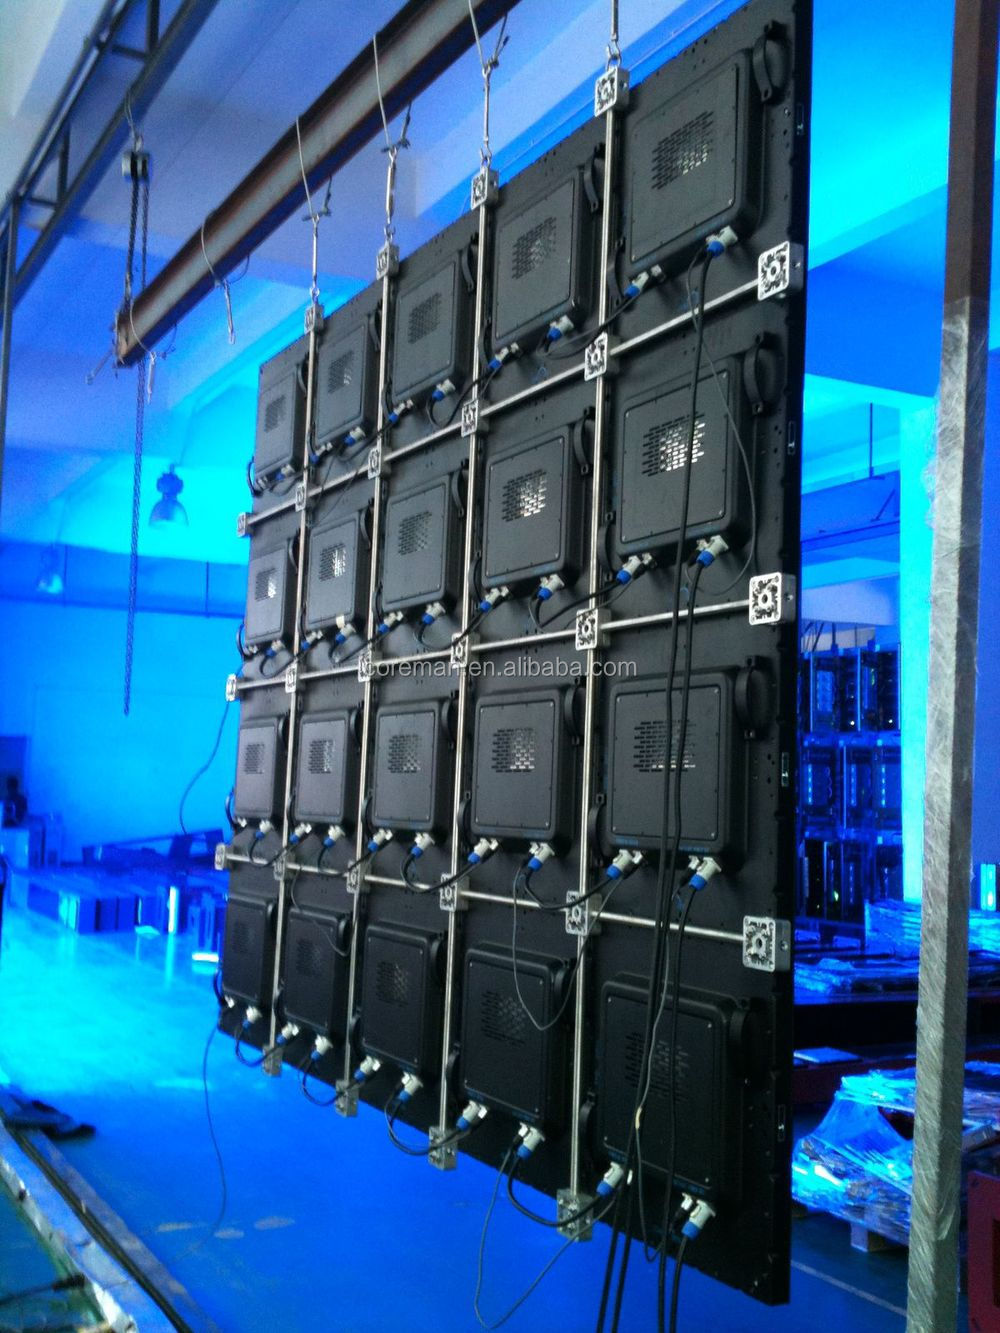 Sound Concert Shenzhen Led Display P3 Outdoor 3d Wall